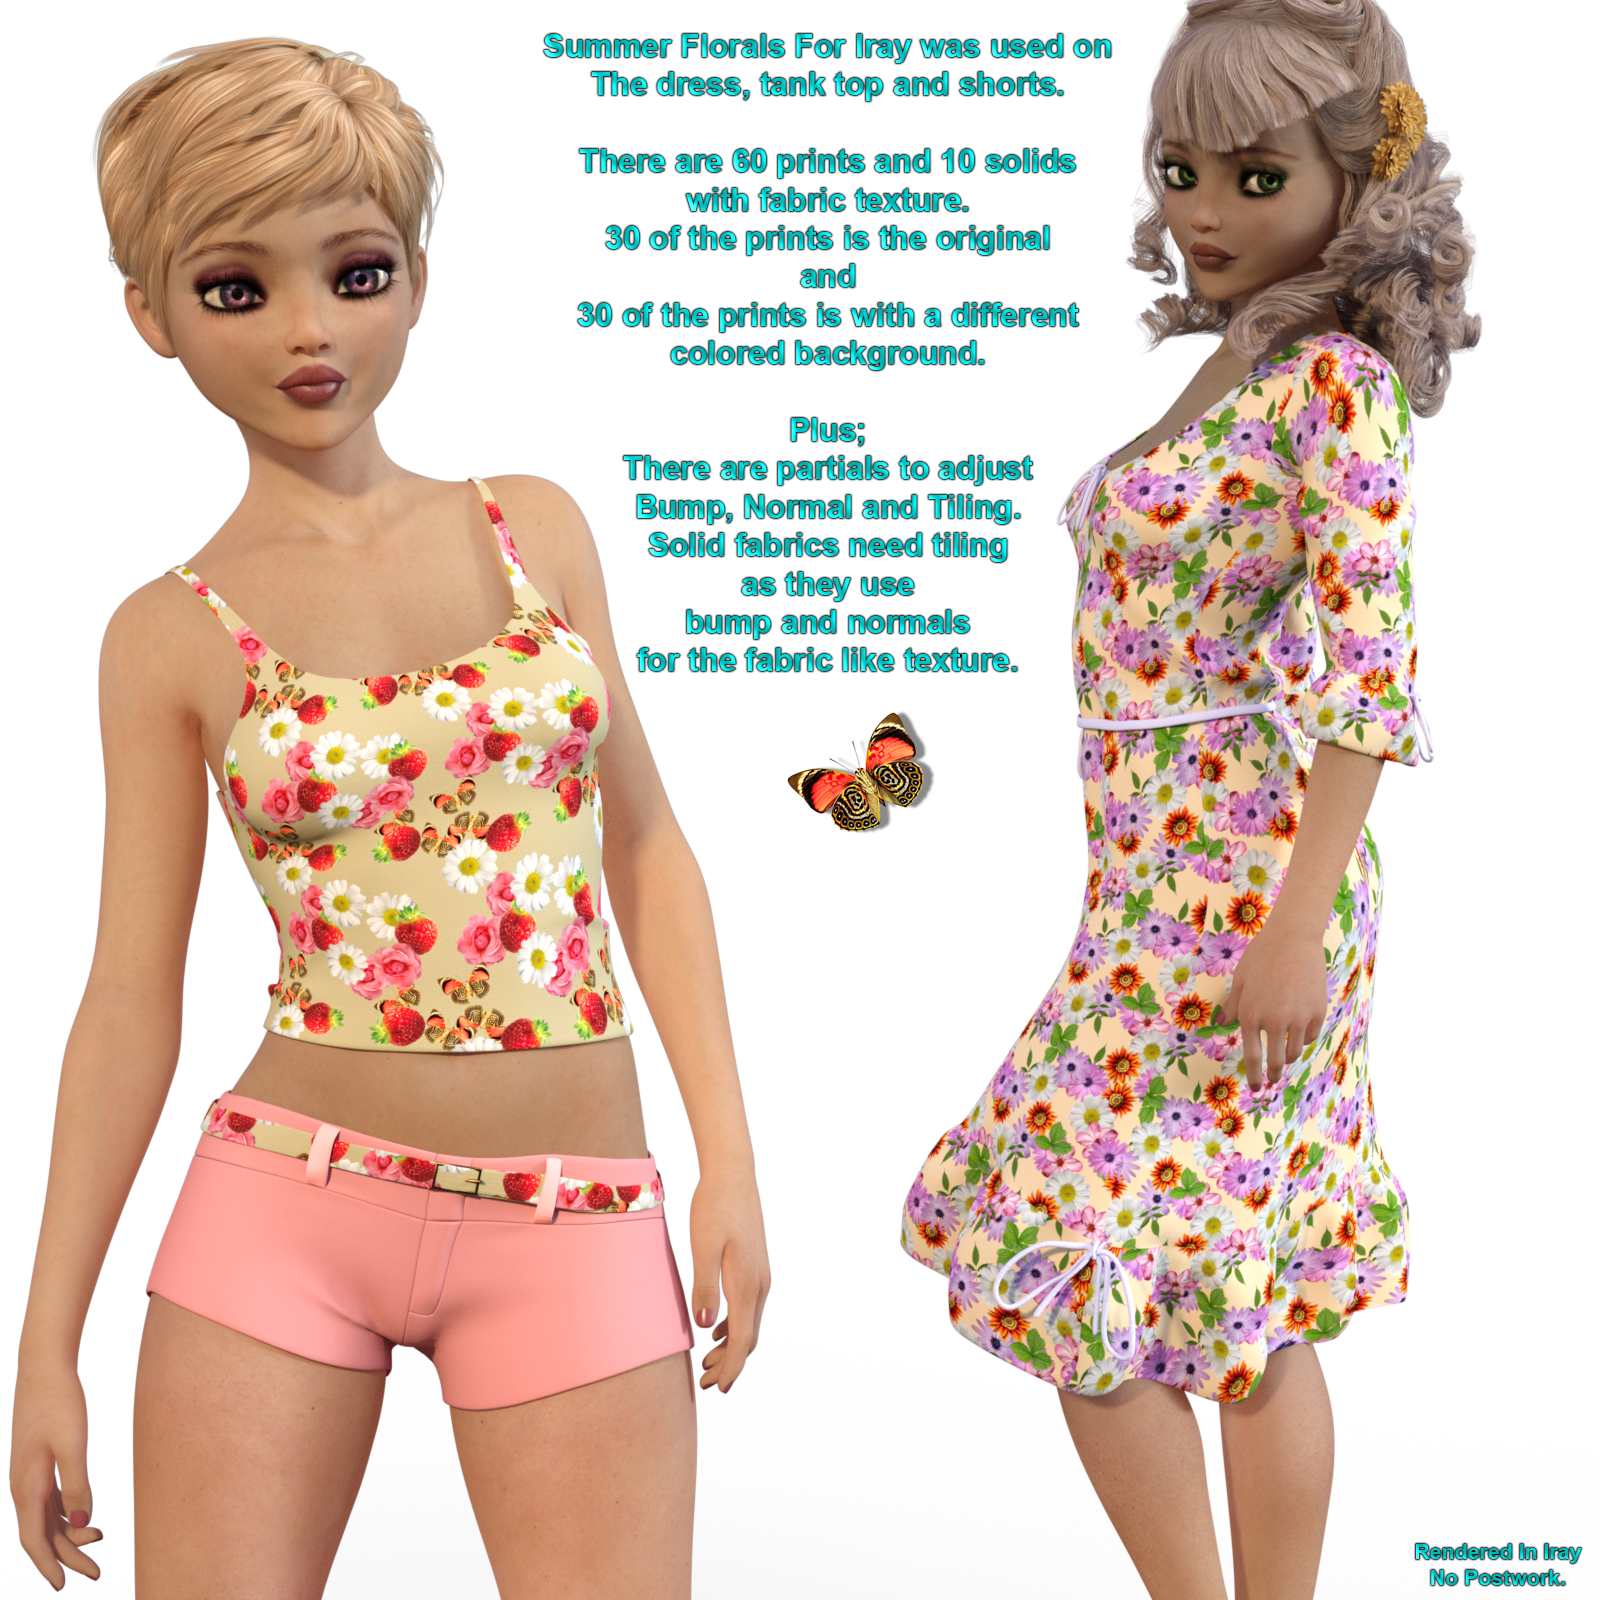 Summer Floral Fabric Shaders For Iray 4.9 - Merchant Resource